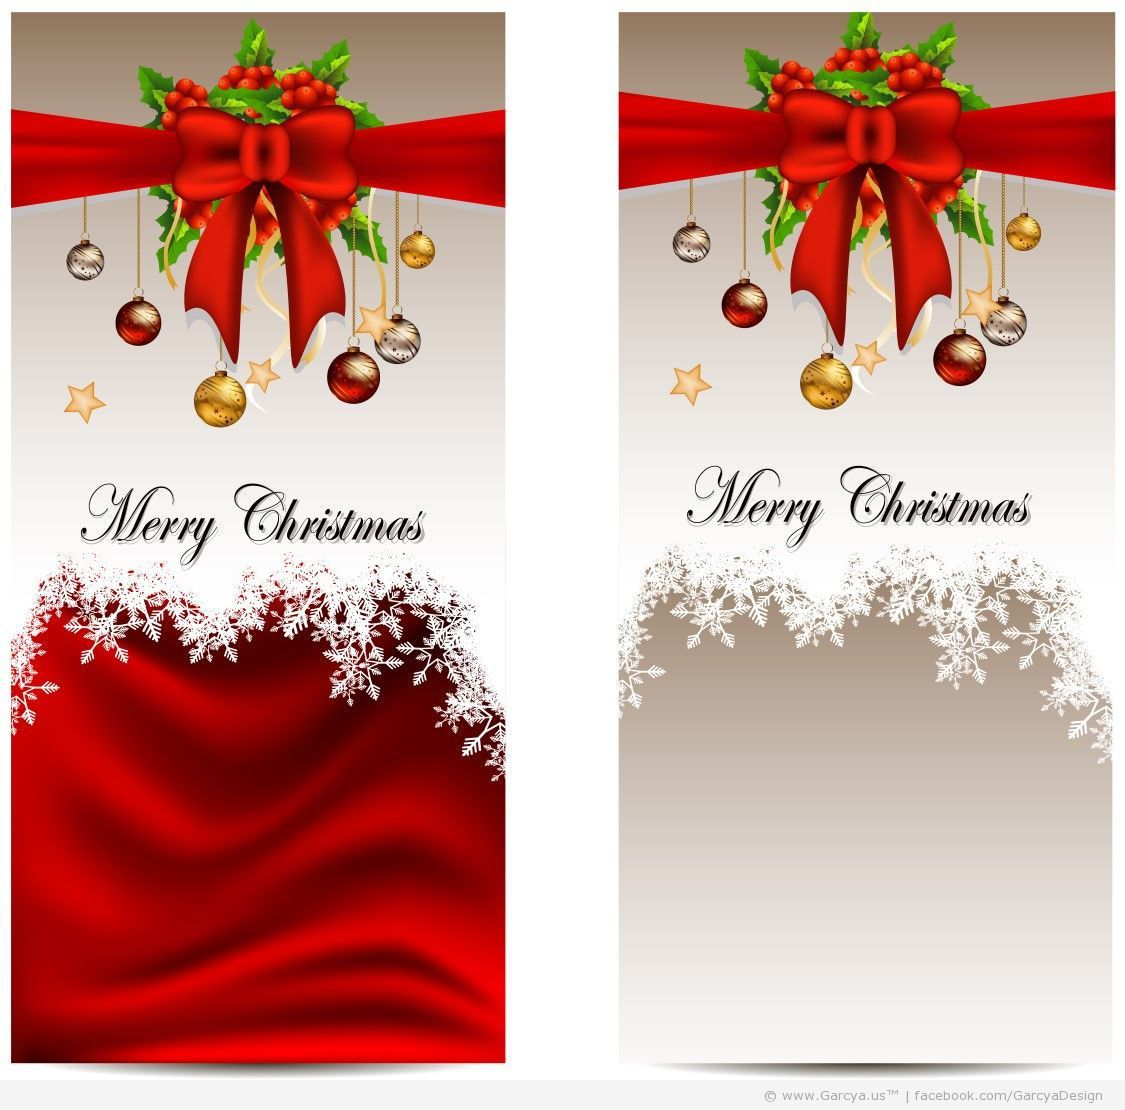 001 Incredible Christma Card Template Free Download High Definition  Photo Xma PlaceFull